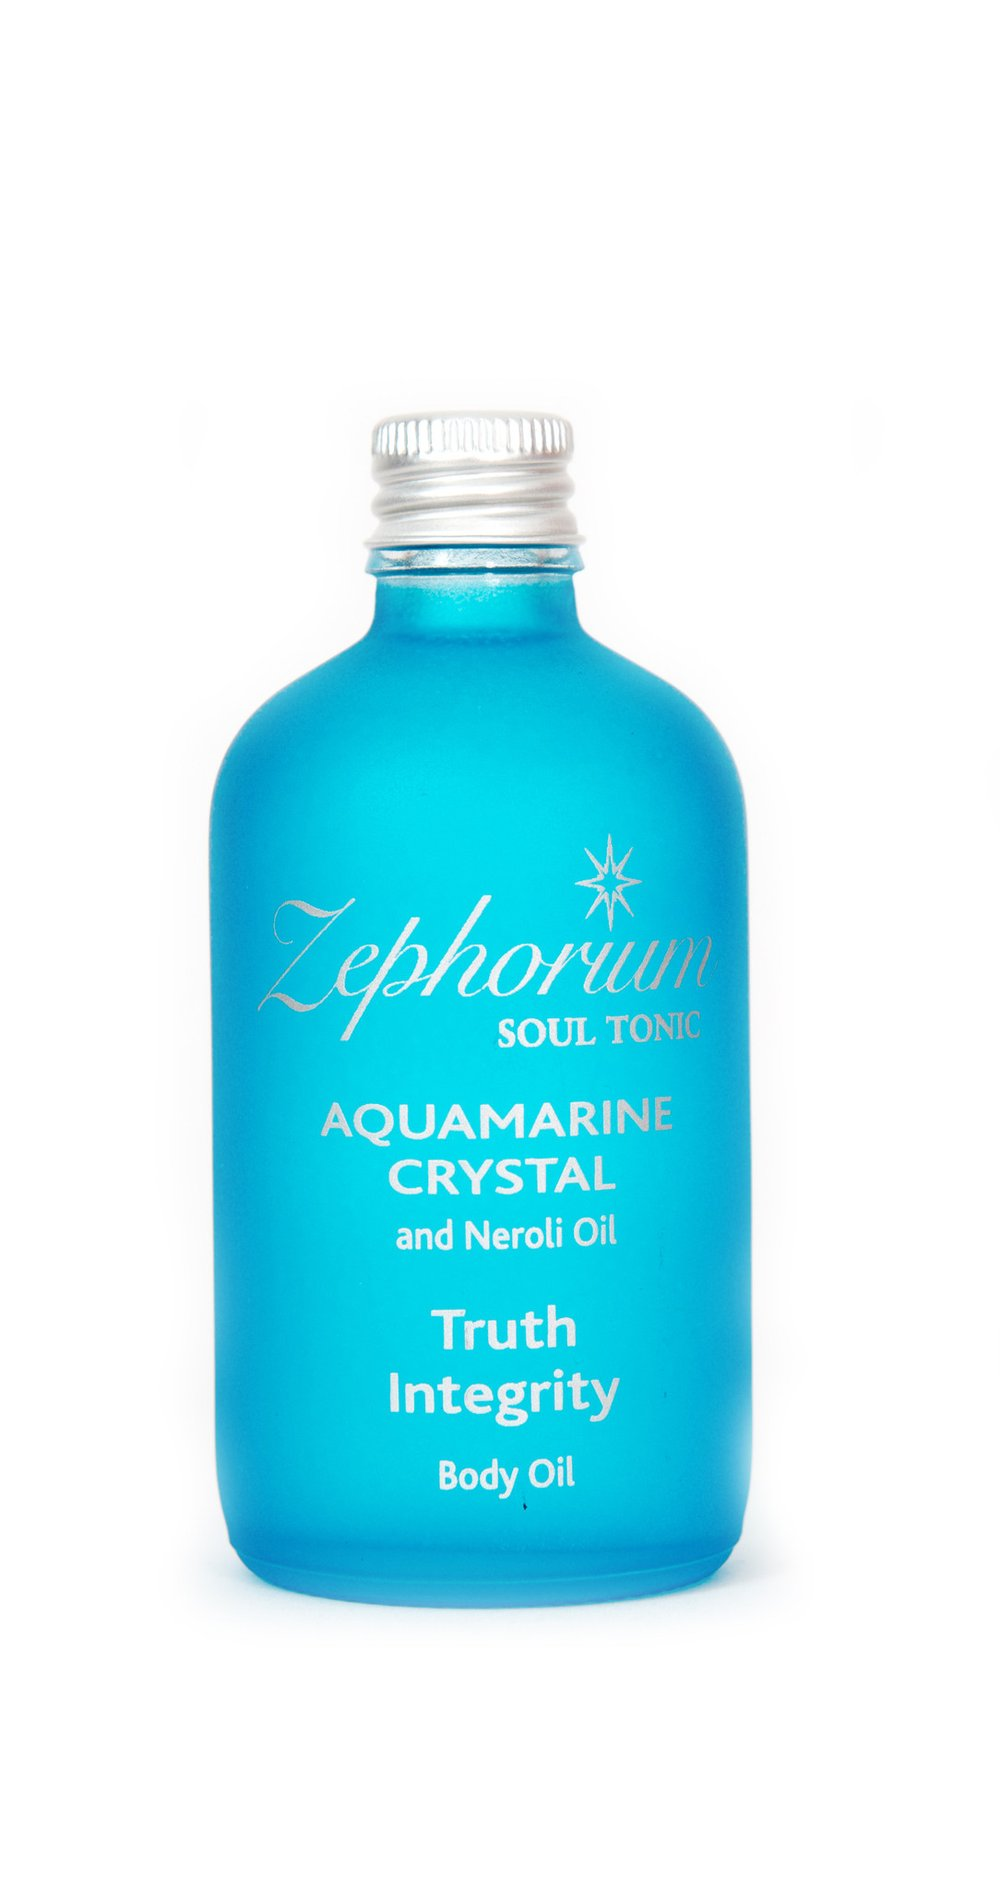 Aquamarin Crystal Body Oil